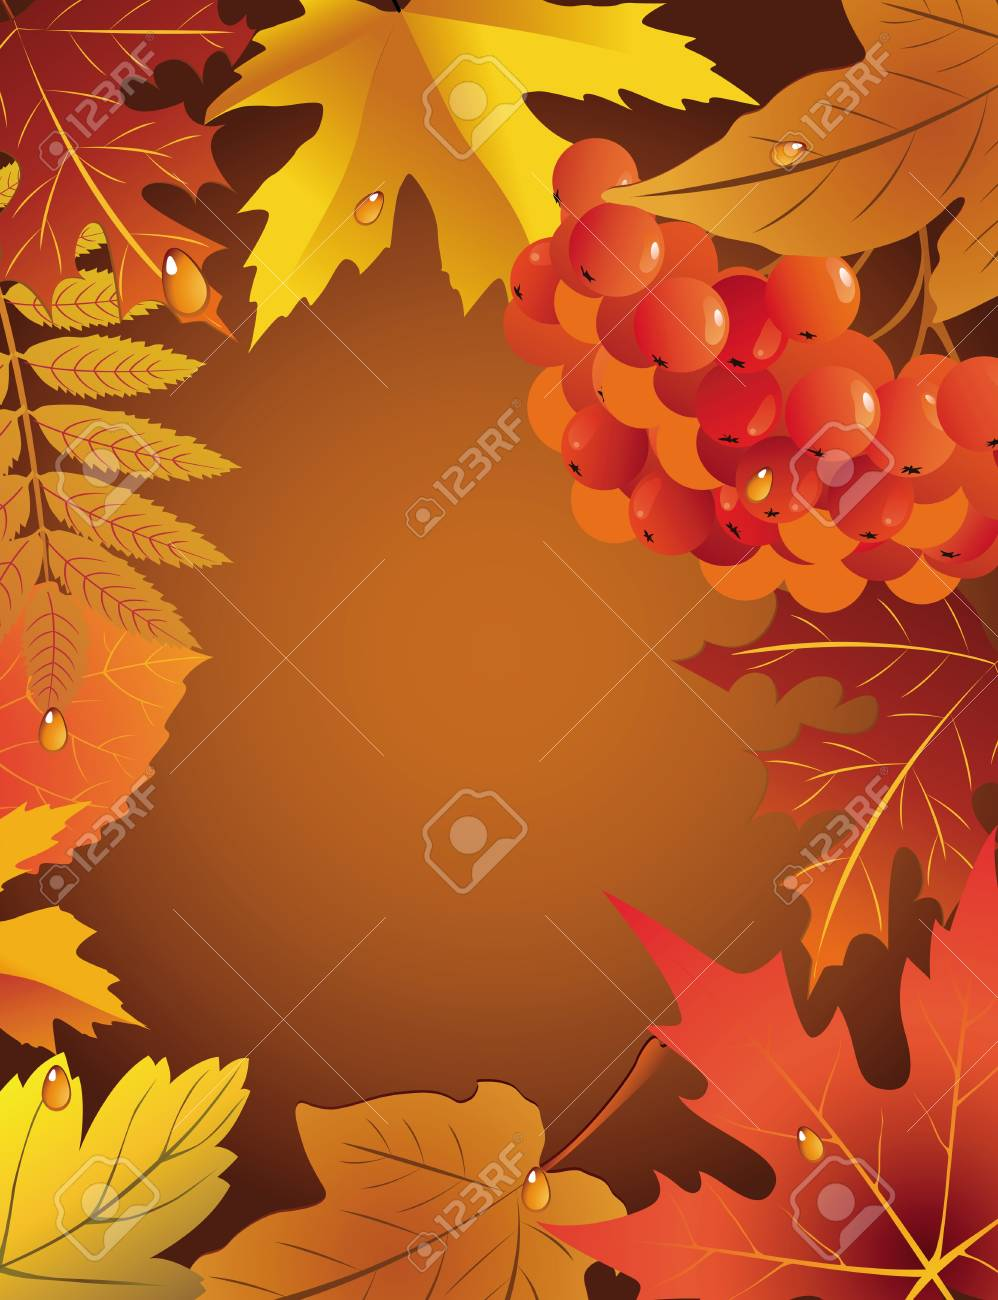 Autumn card with leaves and a mountain ash branch Stock Vector - 23150365